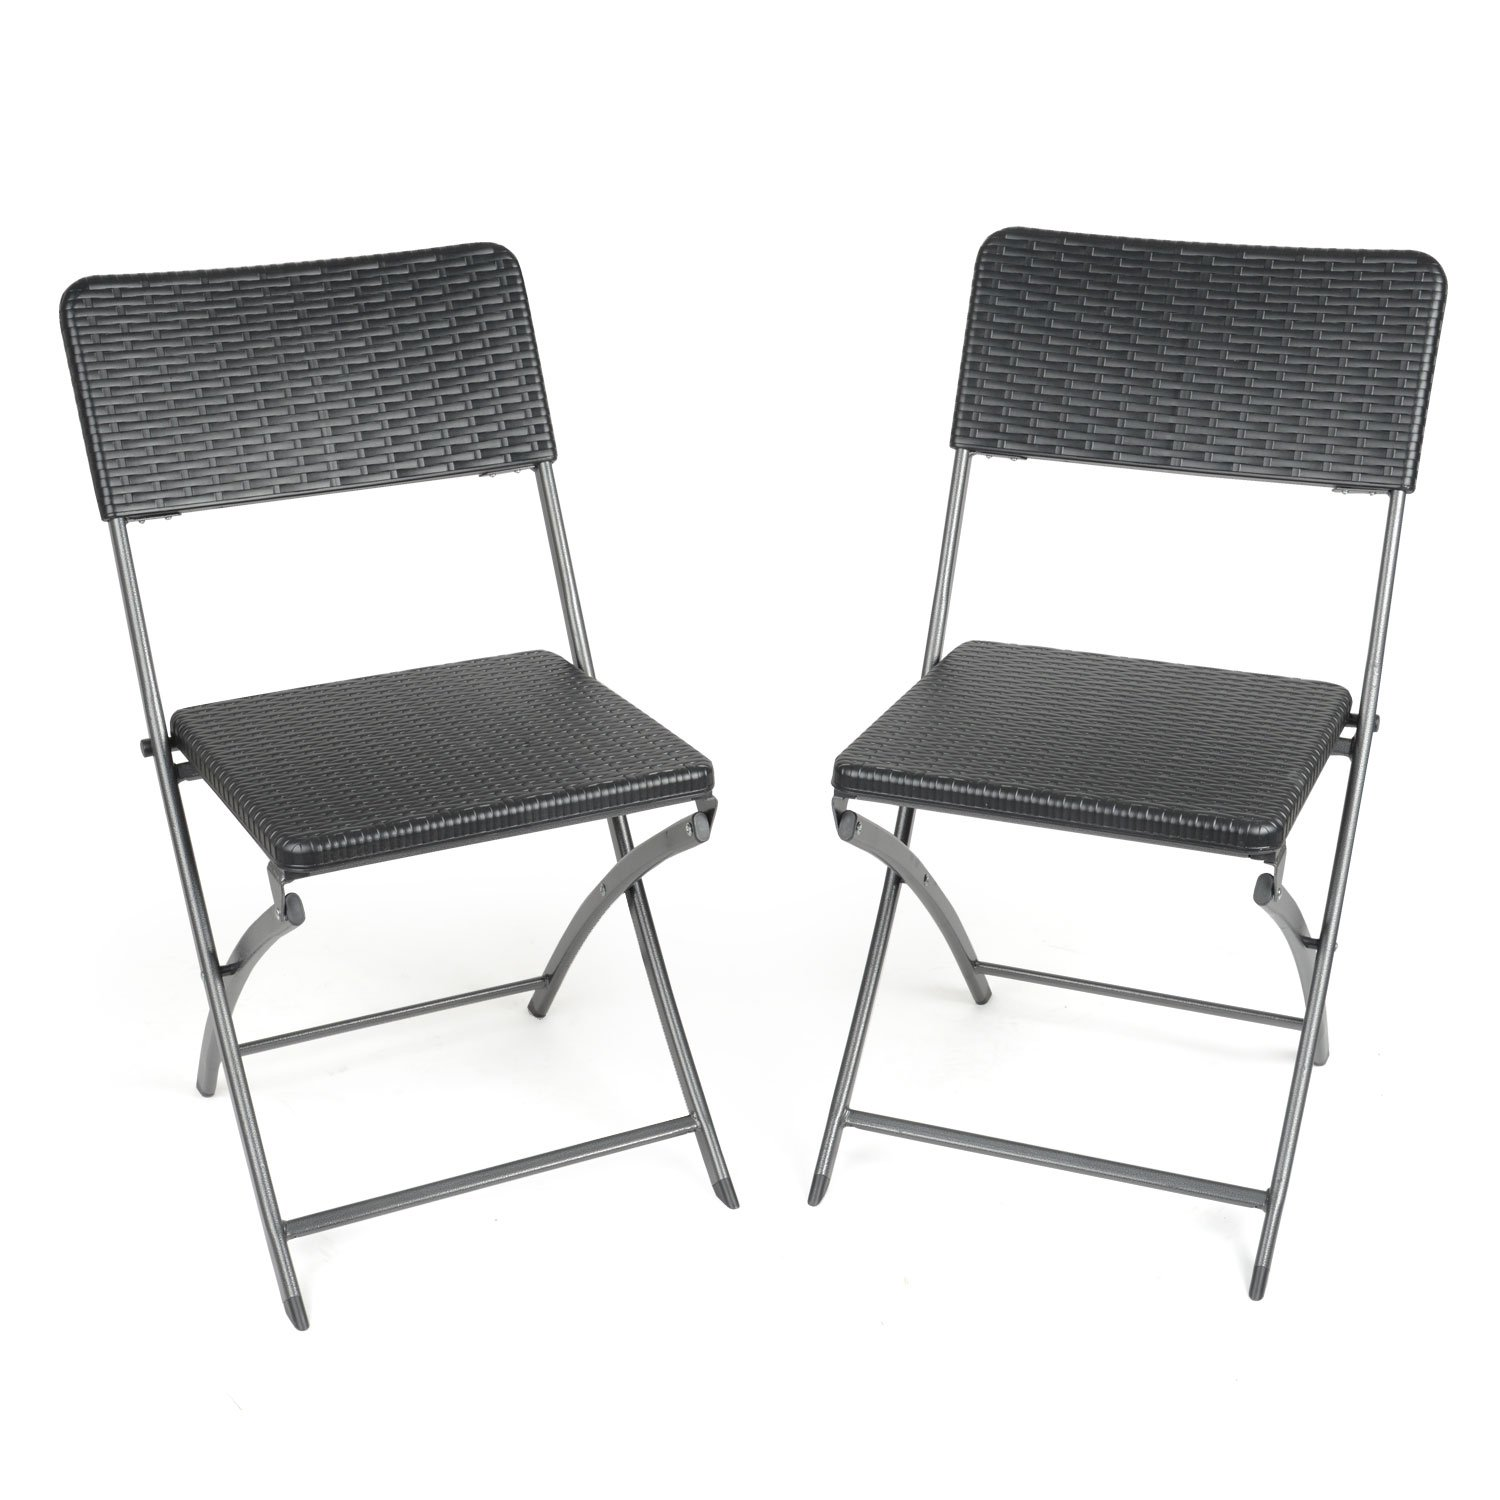 2 x Blow Moulded Folding Chairs Rattan Effect Heavy Duty Camping